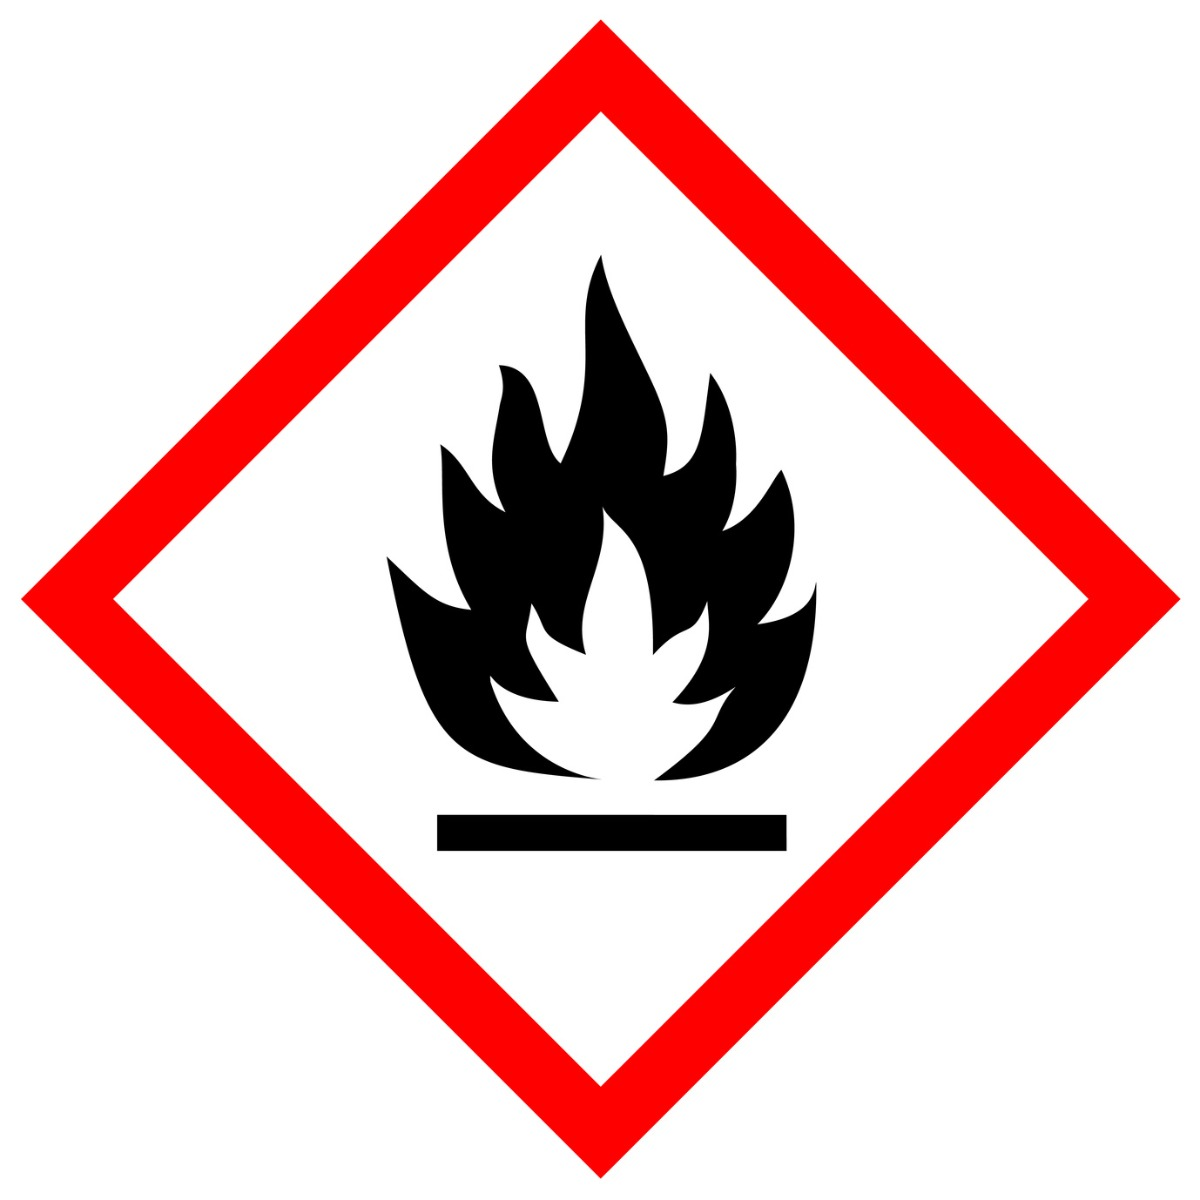 GHS02 inflammable